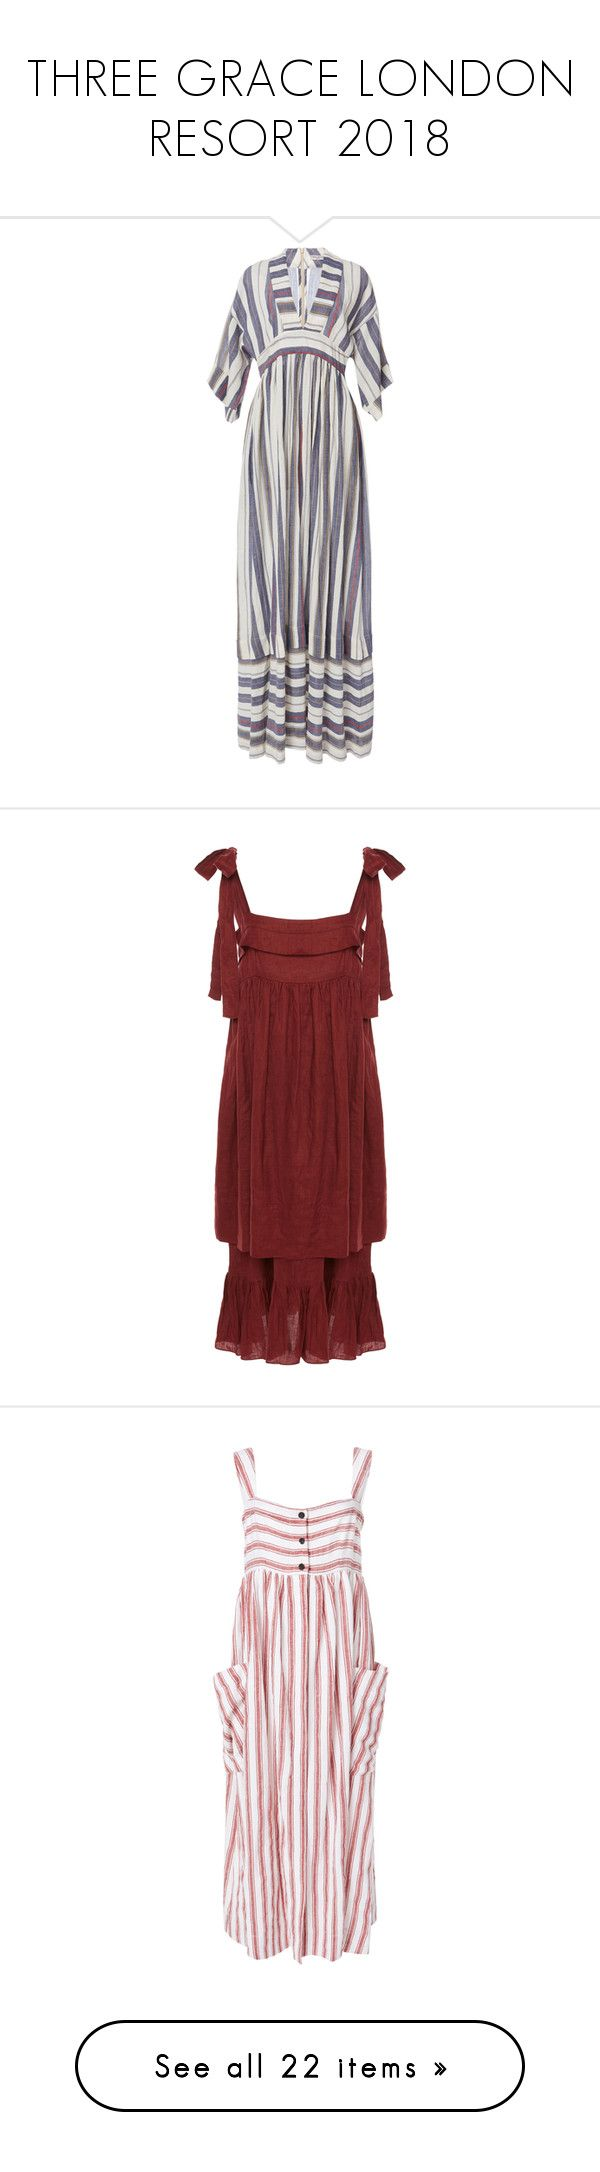 """THREE GRACE LONDON RESORT 2018"" by eenn ❤ liked on Polyvore featuring dresses, elbow sleeve dress, deep v neck dress, low v neck dress, elbow length dresses, half sleeve dresses, ruched dress, shirred dress, square neck dress and red square neck dress"